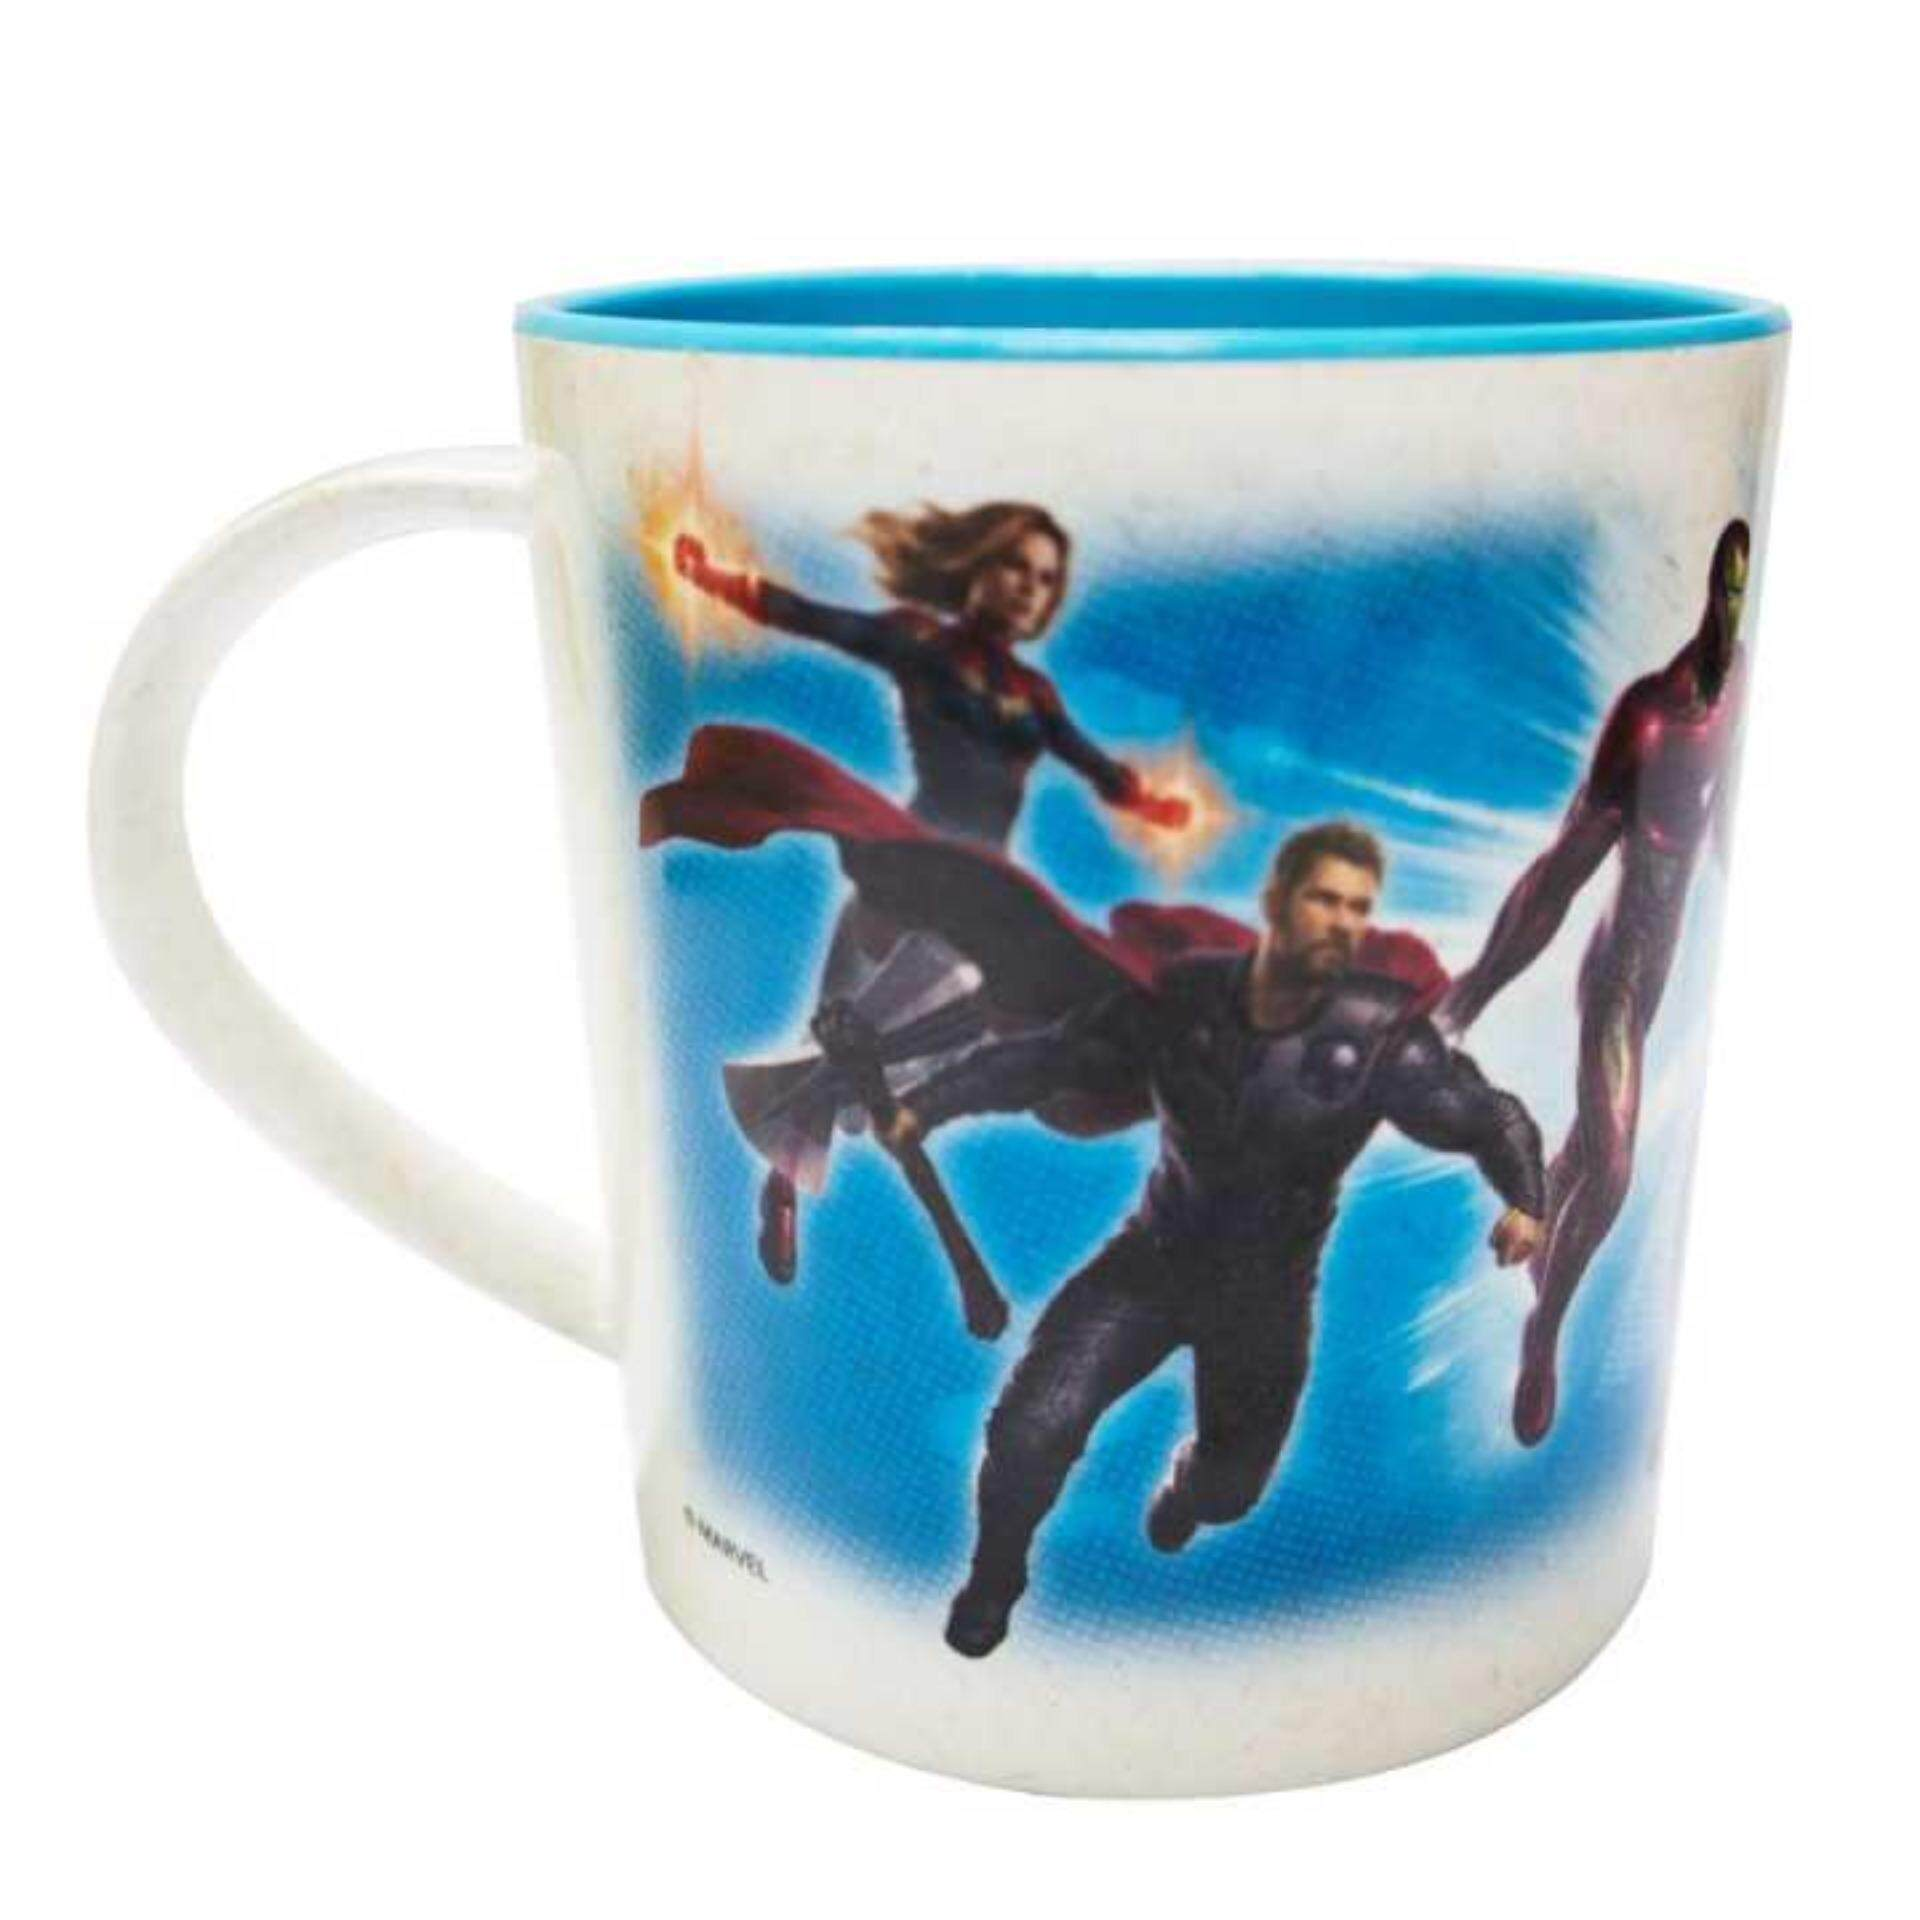 Marvel Avengers Endgame Bamboo Fibre Cup 3.5 Inches - Blue Colour